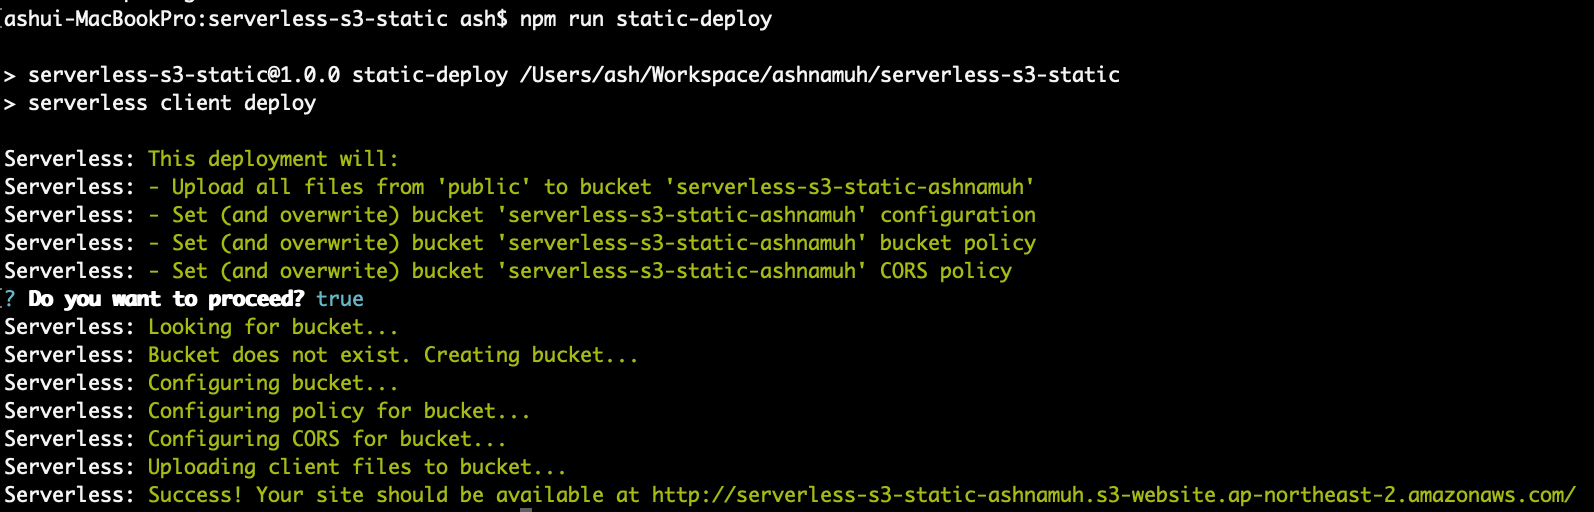 serverless_s3_static1.png